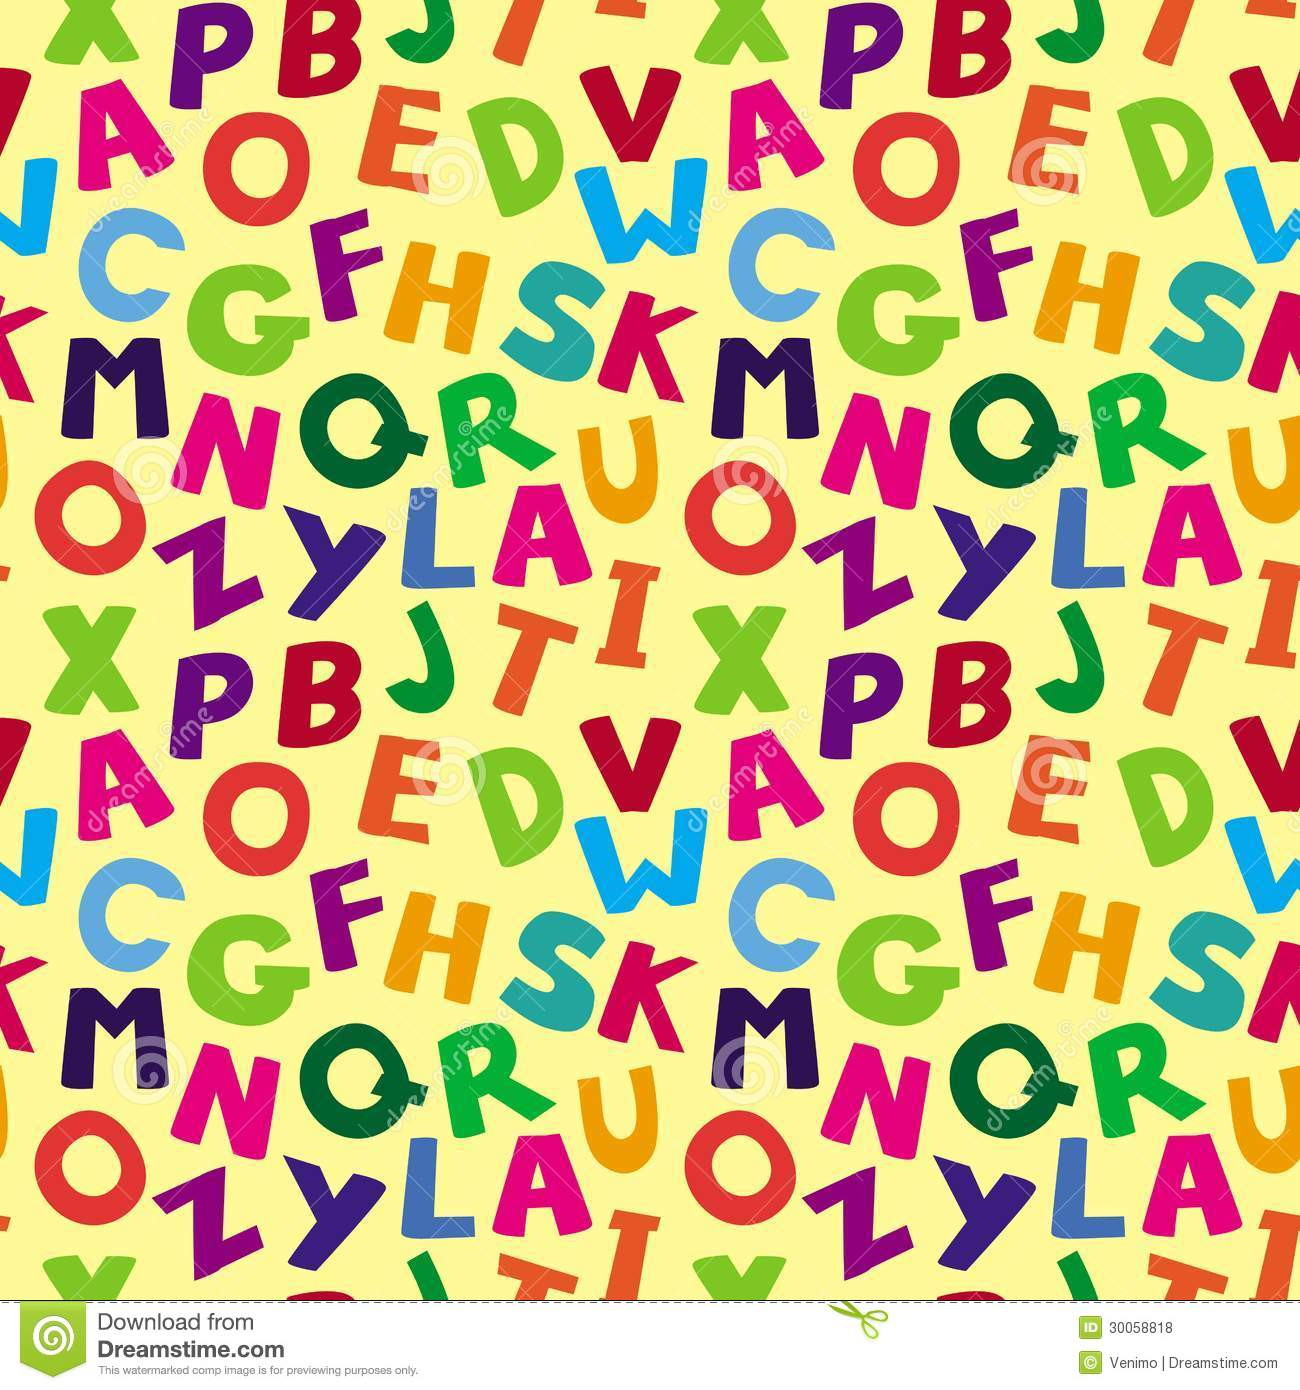 Vector Seamless Pattern With Cartoon Letters Royalty Free Stock Photos ...